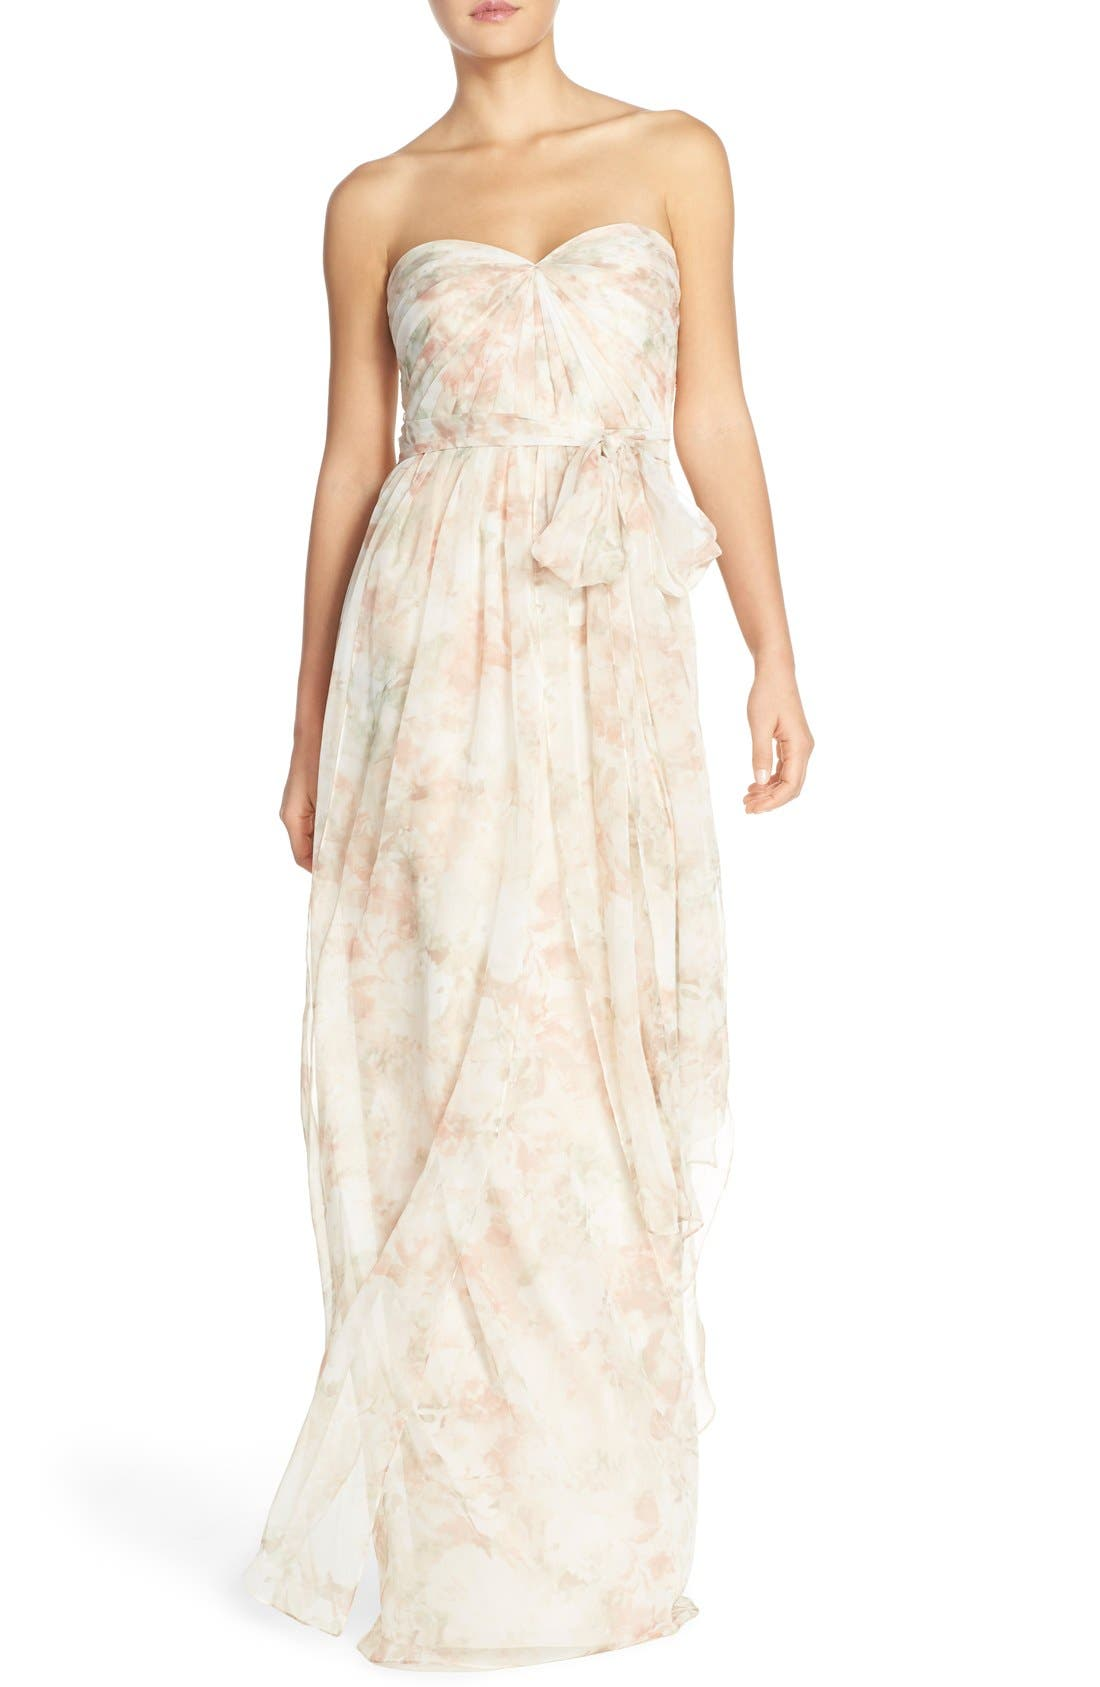 Nyla Floral Print Convertible Strapless Chiffon Gown, Main, color, 690